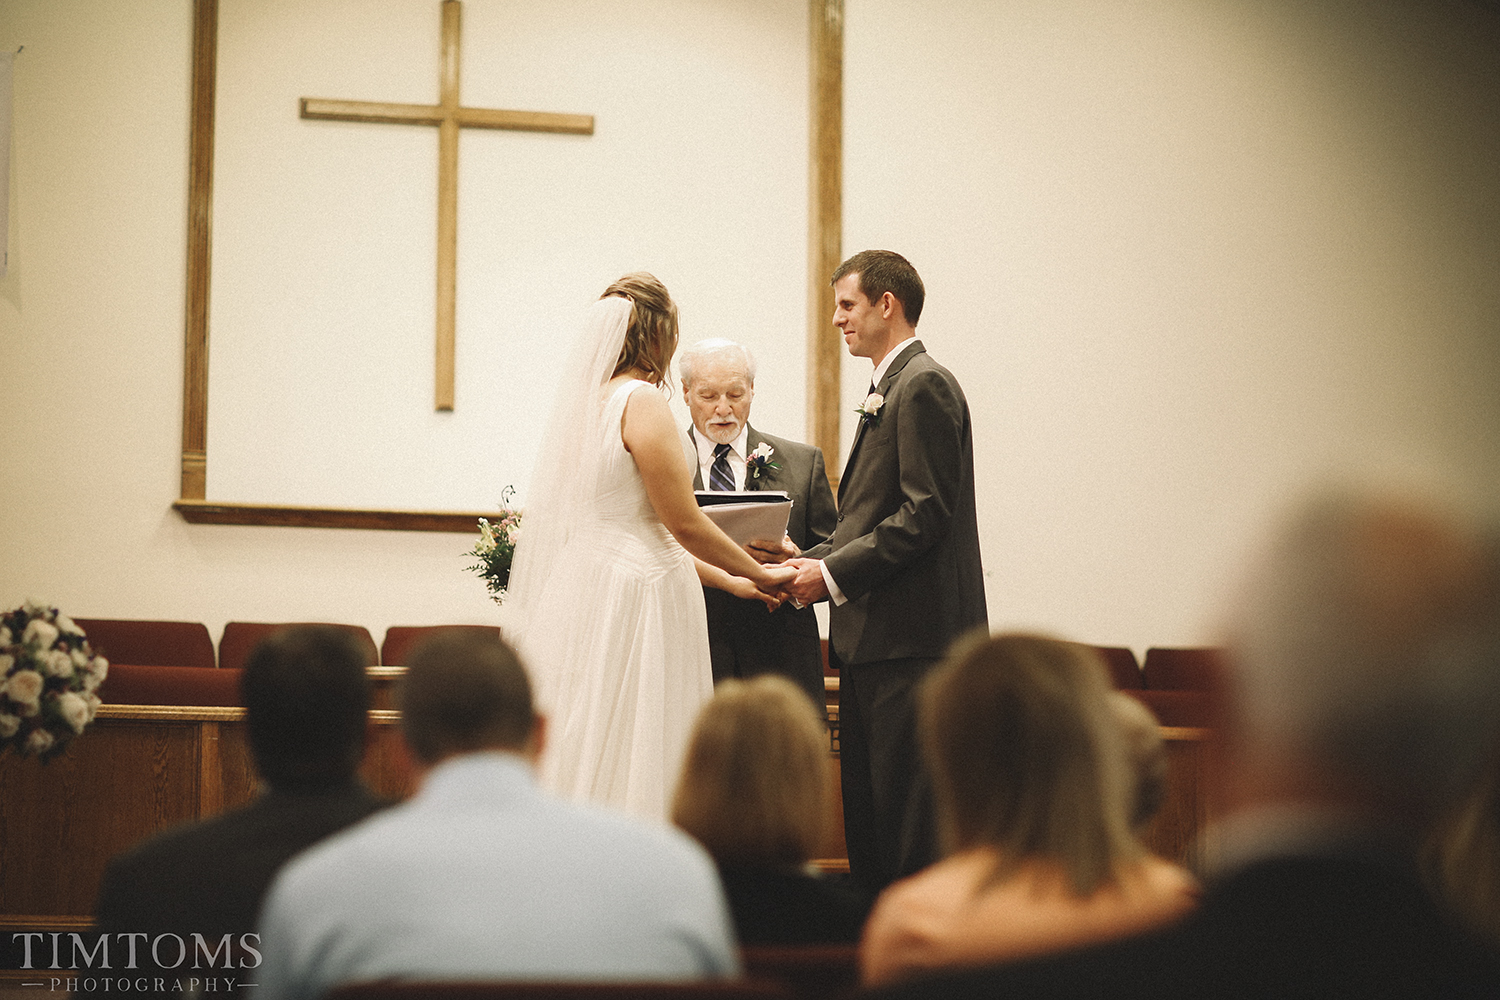 Bride and Groom wedding at the altar i do